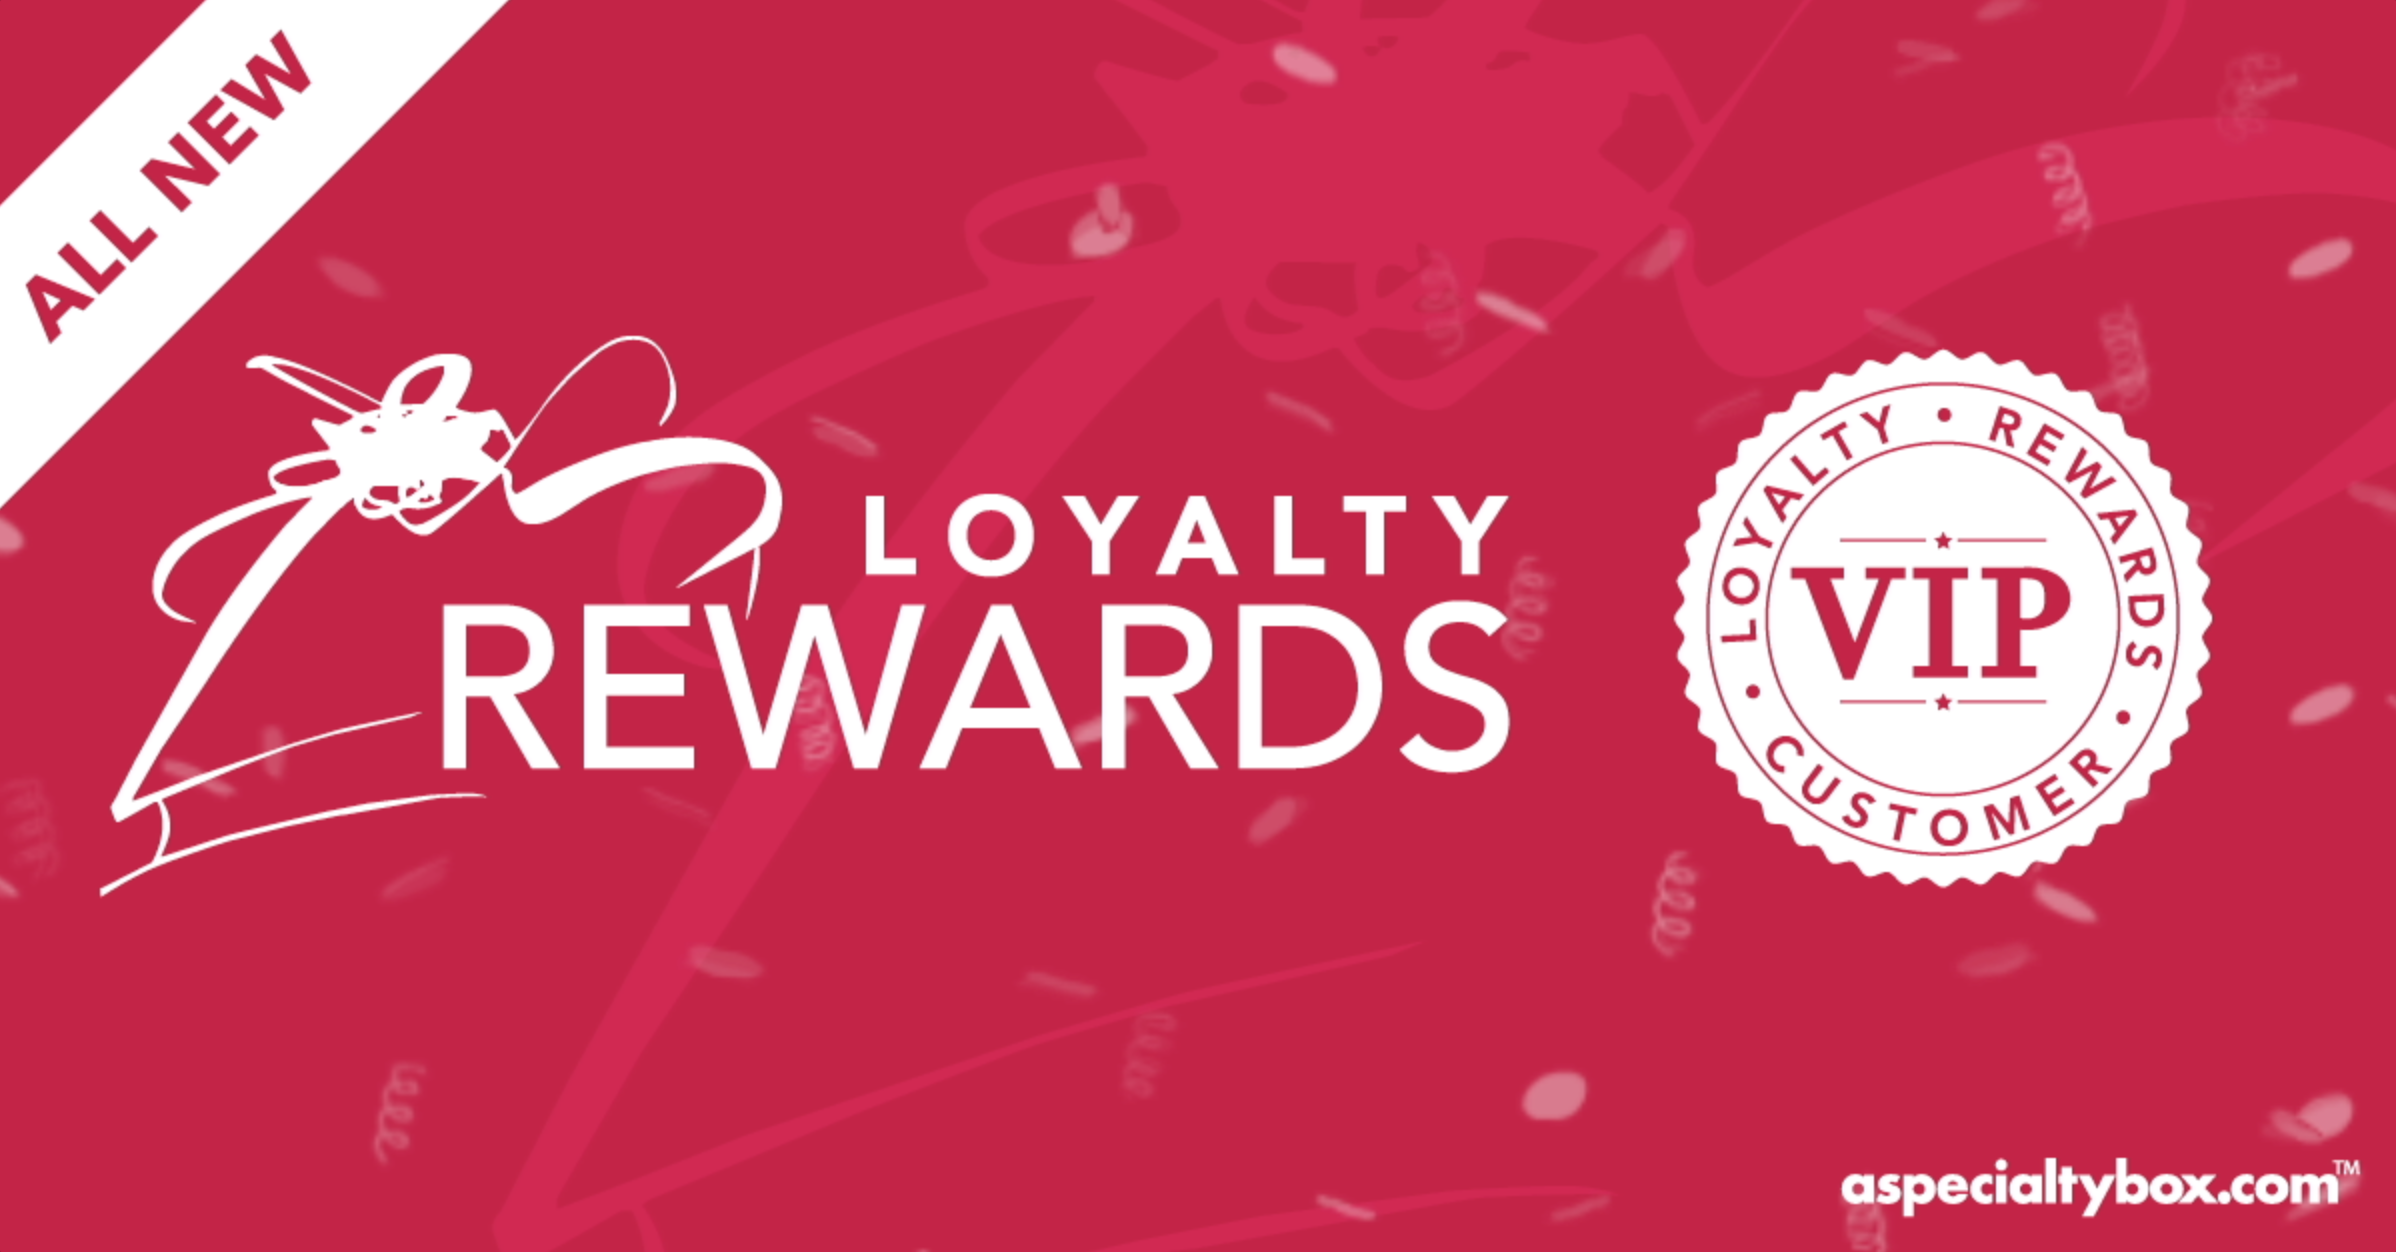 Loyalty Rewards Program >> Improved Loyalty Rewards Program